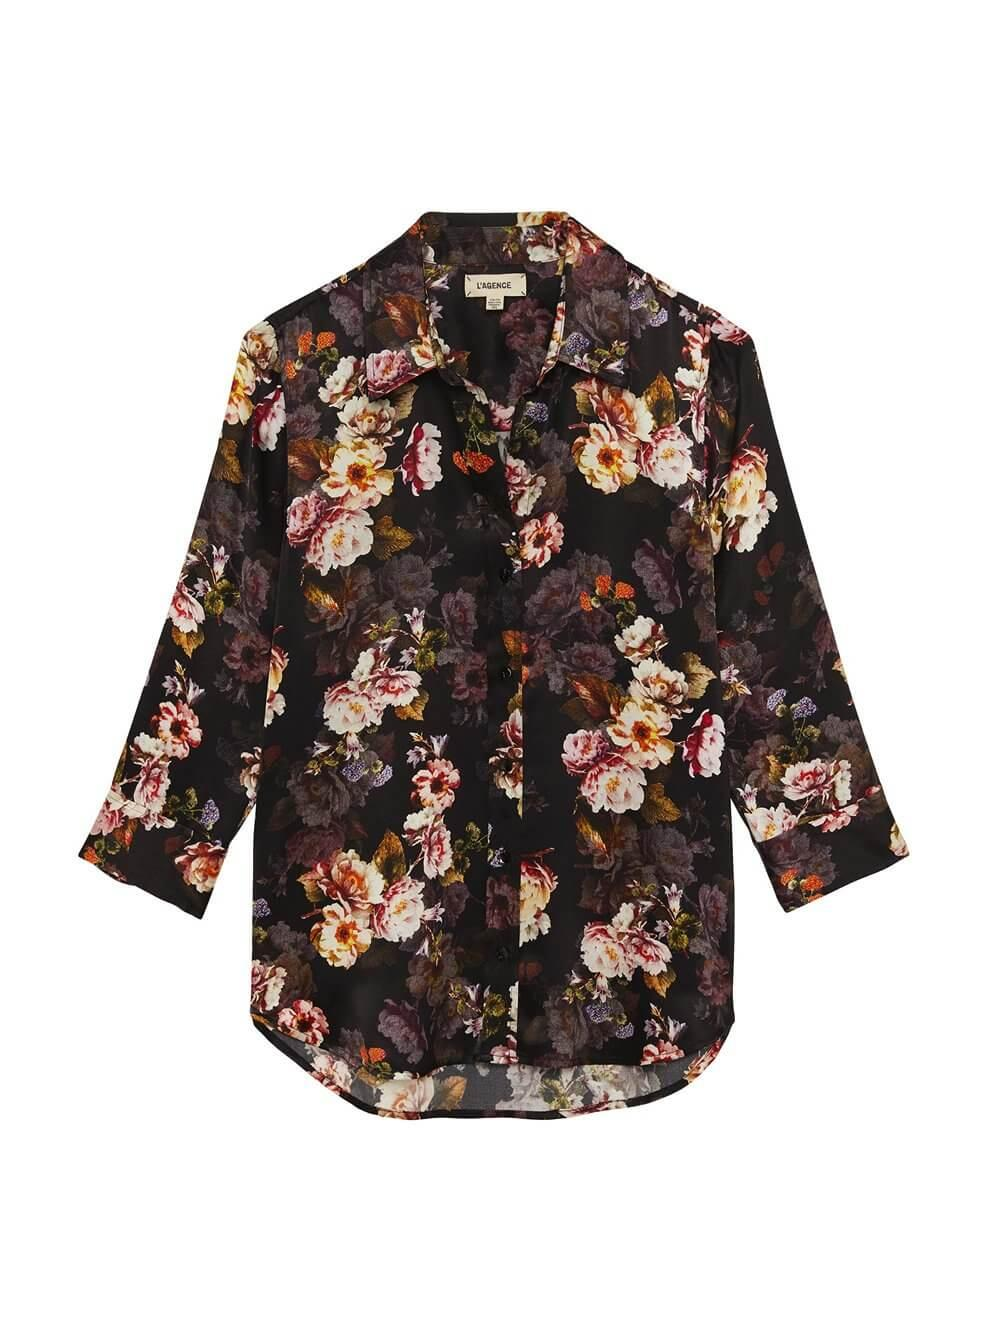 Dani Rose Print Blouse Item # 40126MRS